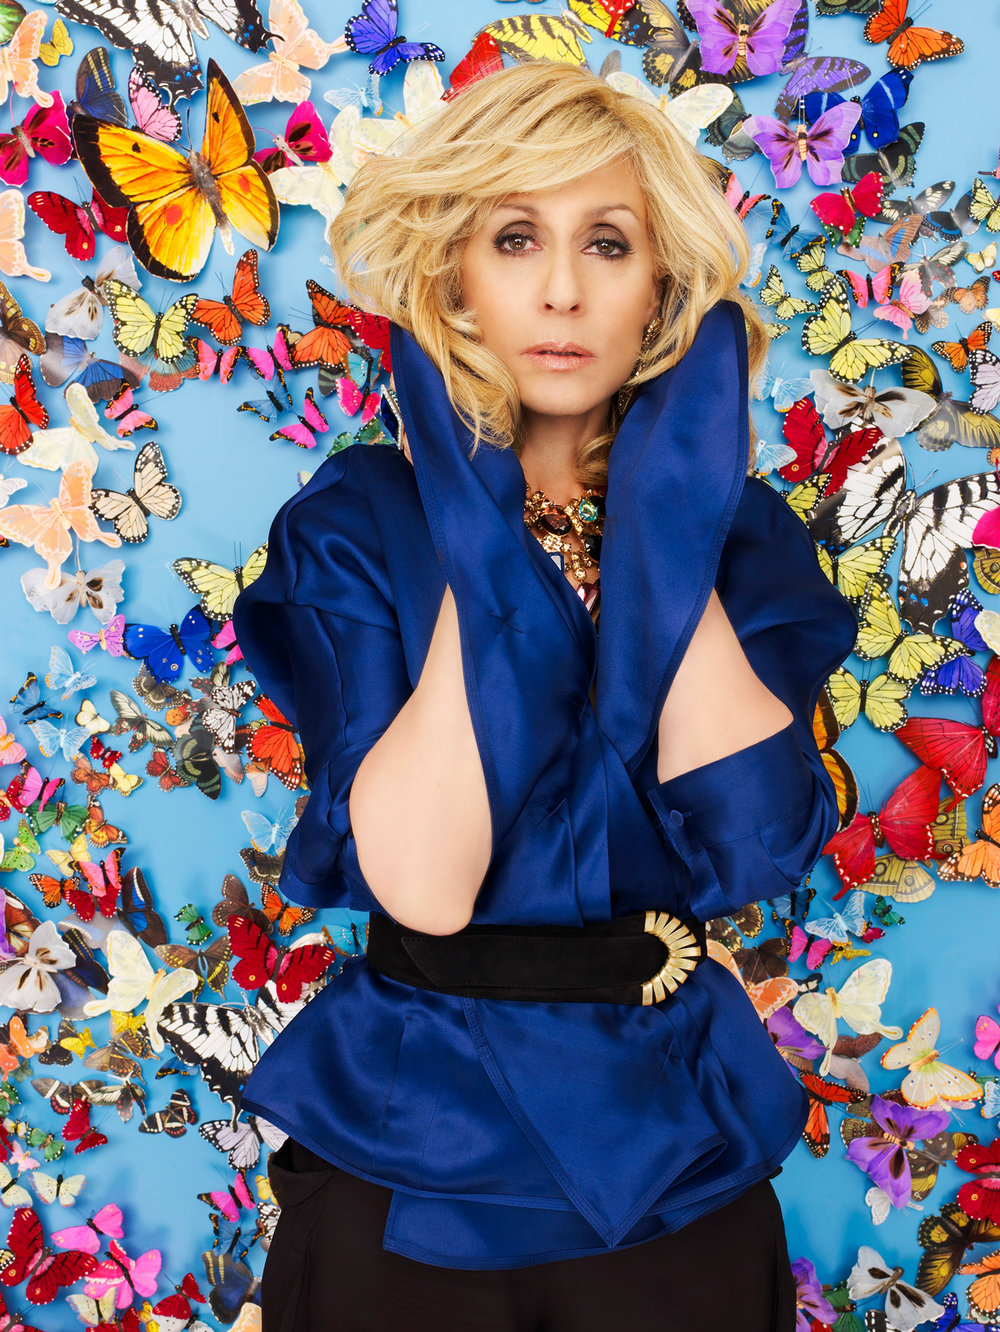 TV_ABC_UglyBetty_JudithLight_Portrait.jpg